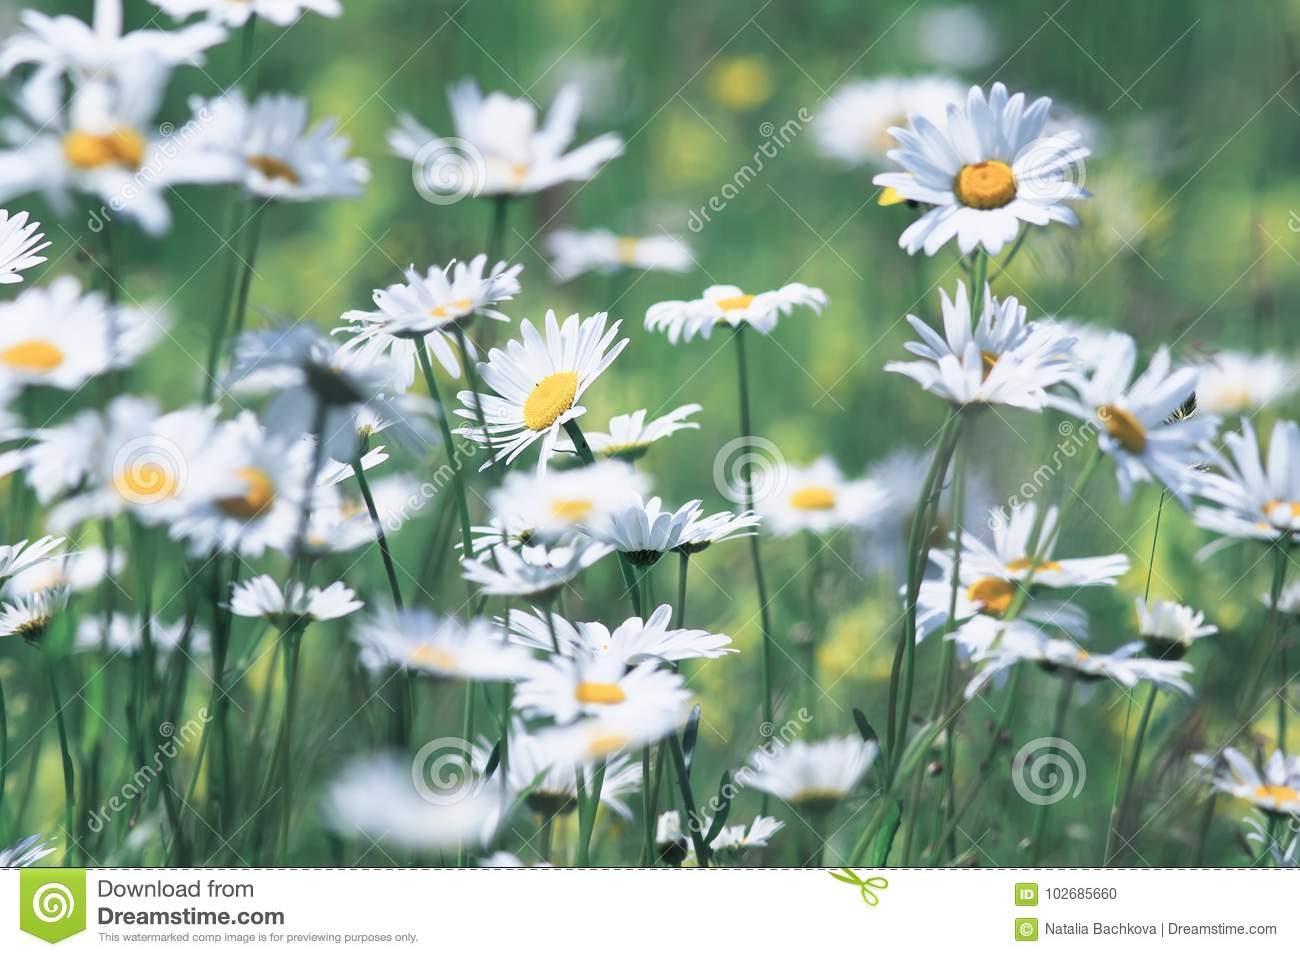 Summer Field With White Delicate Flowers Daisies Stock Photo Image